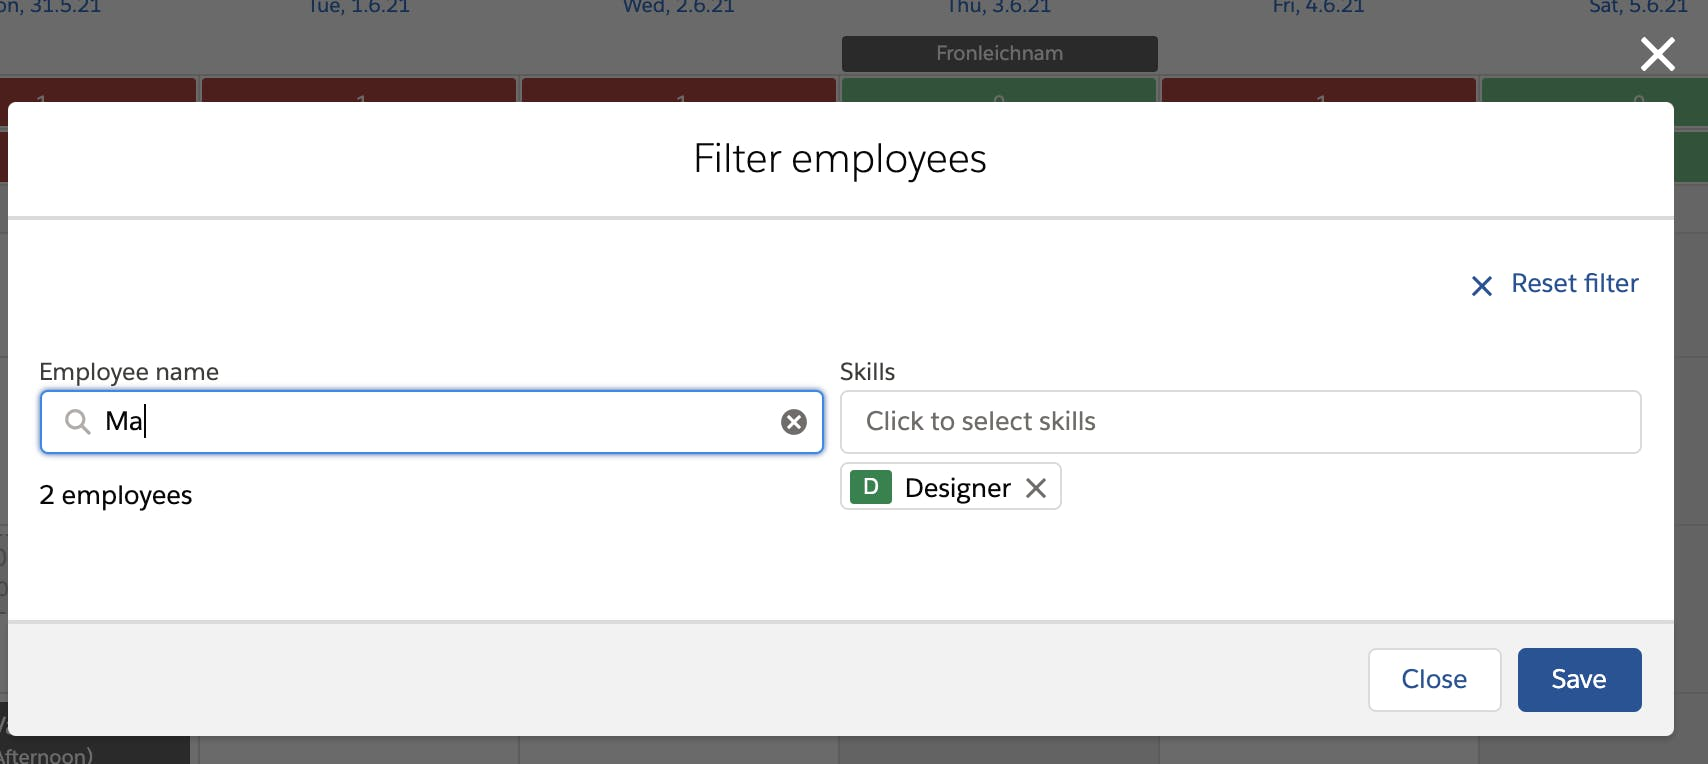 Flair's Shiftplanner: Filter Employees by Name and Shifts